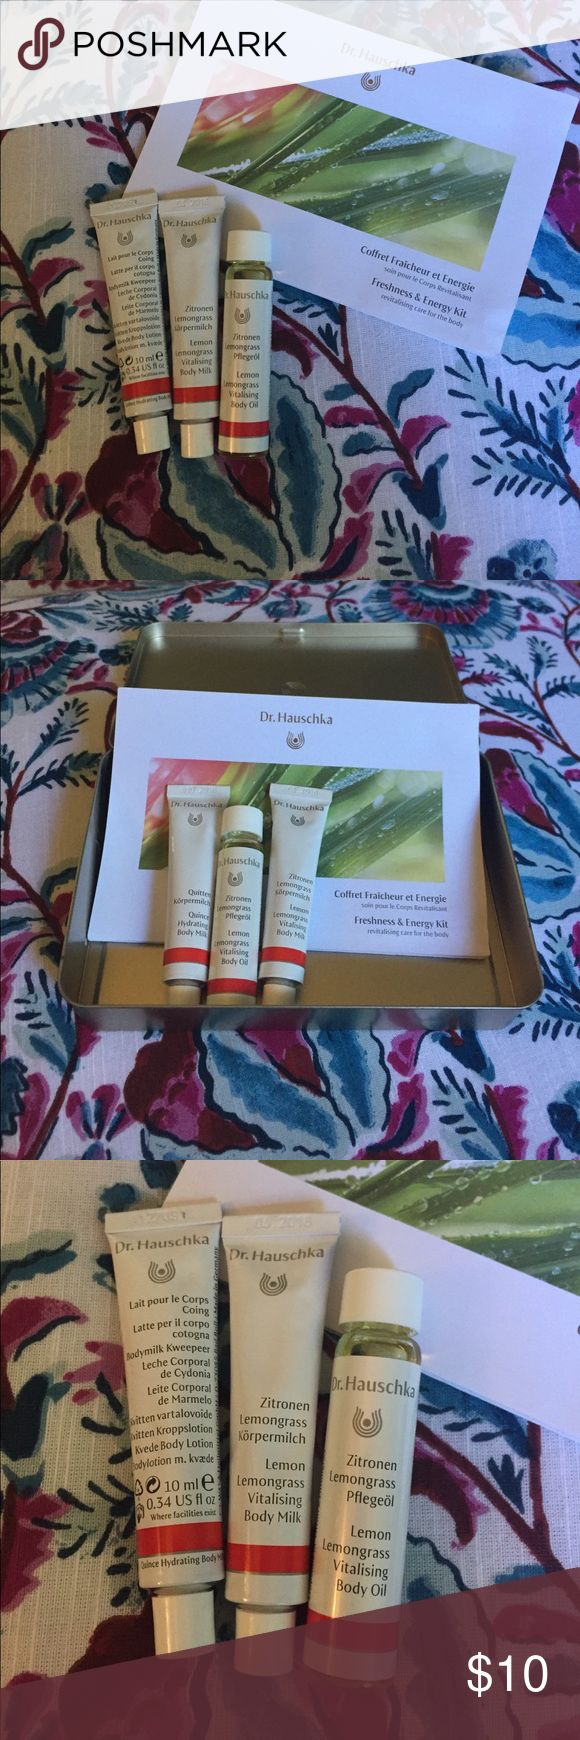 Dr. Hauschka body milk & body oil gift set Dr. Hauschka freshness & energy gift set . Includes : 1 lemon lemongrass body oil ( 10 ml) , 1 lemon lemongrass vitalising body milk ( 10 ml), 1 Quitten hydrating body milk ( 10 ml),  Dr. Hauschka pamphlet , and metal box . This was a gift set I was given a few years back and I haven't used all of the products . Would make a great travel kit or small gift . Outside of box does show some wear. Product is new & unused though 😘 Dr. Hauschka Other